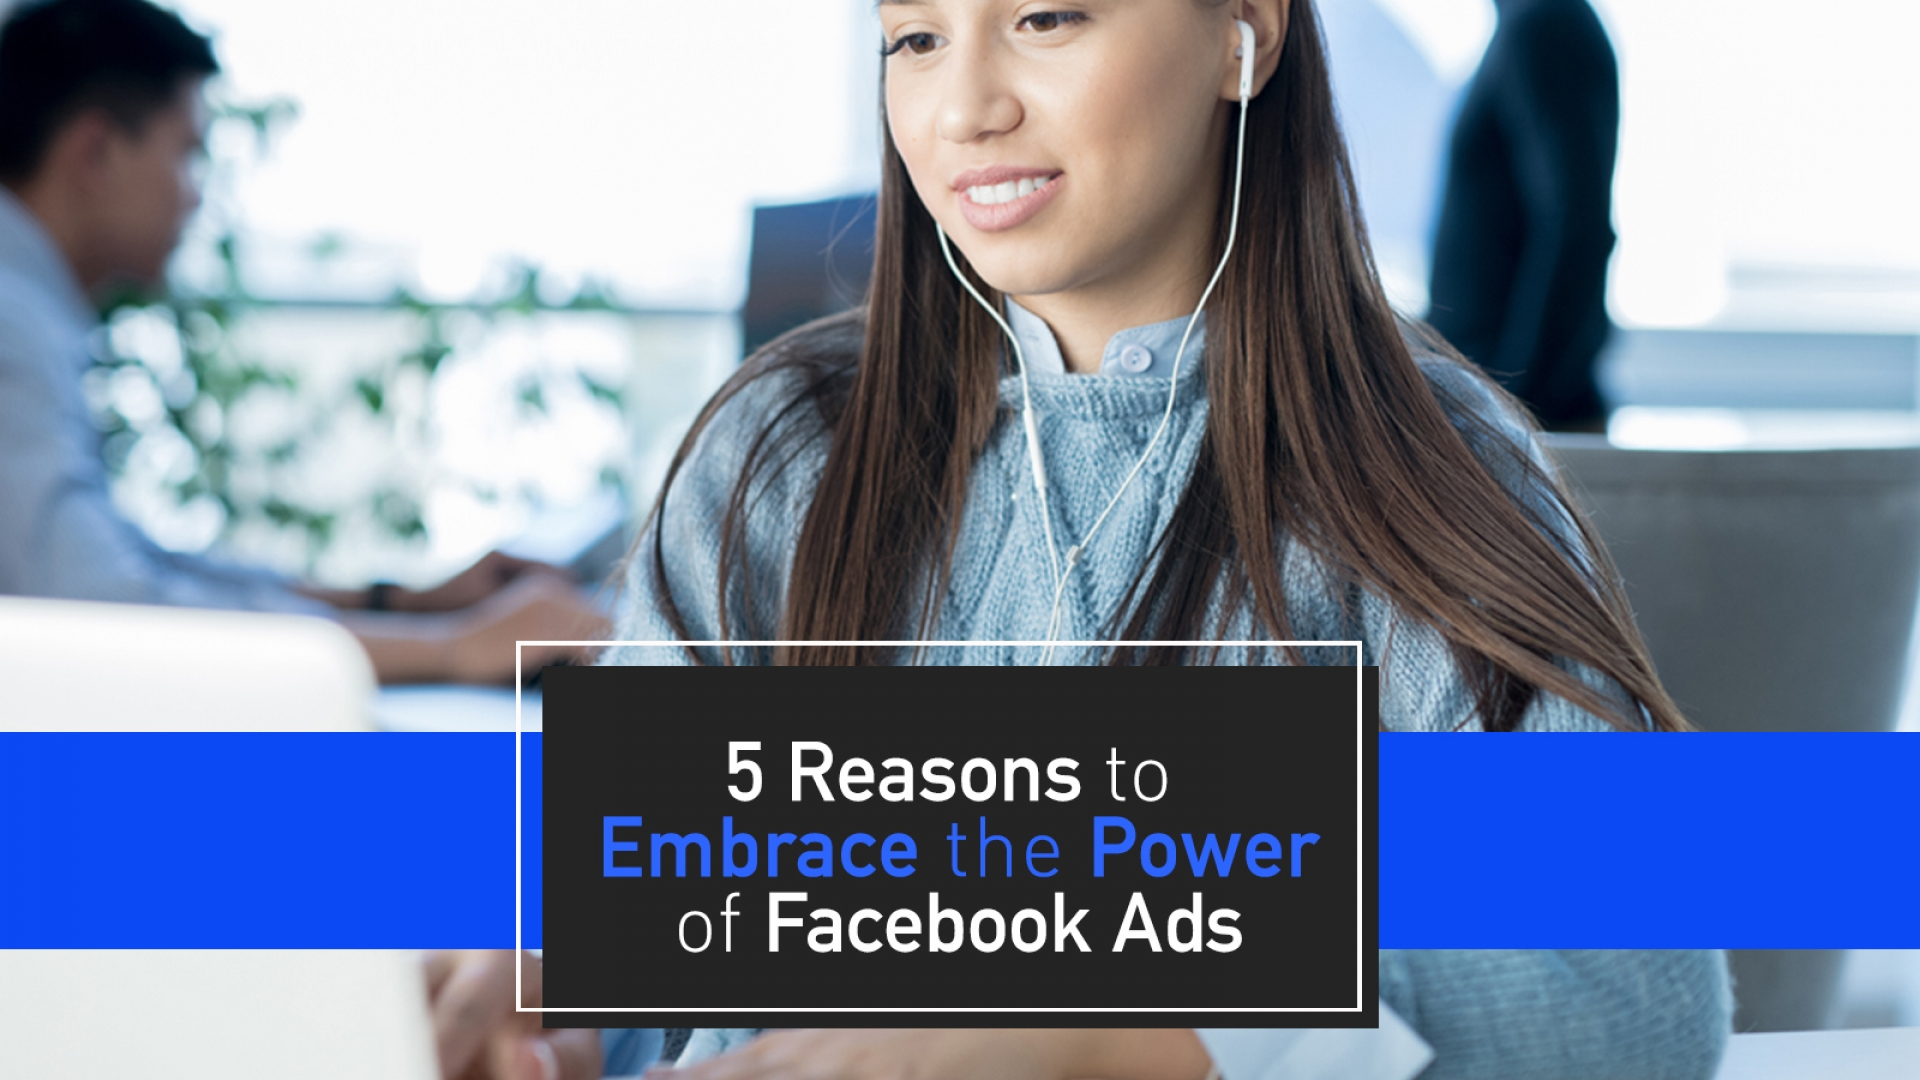 5 Reasons to Embrace the Power of Facebook Advertising